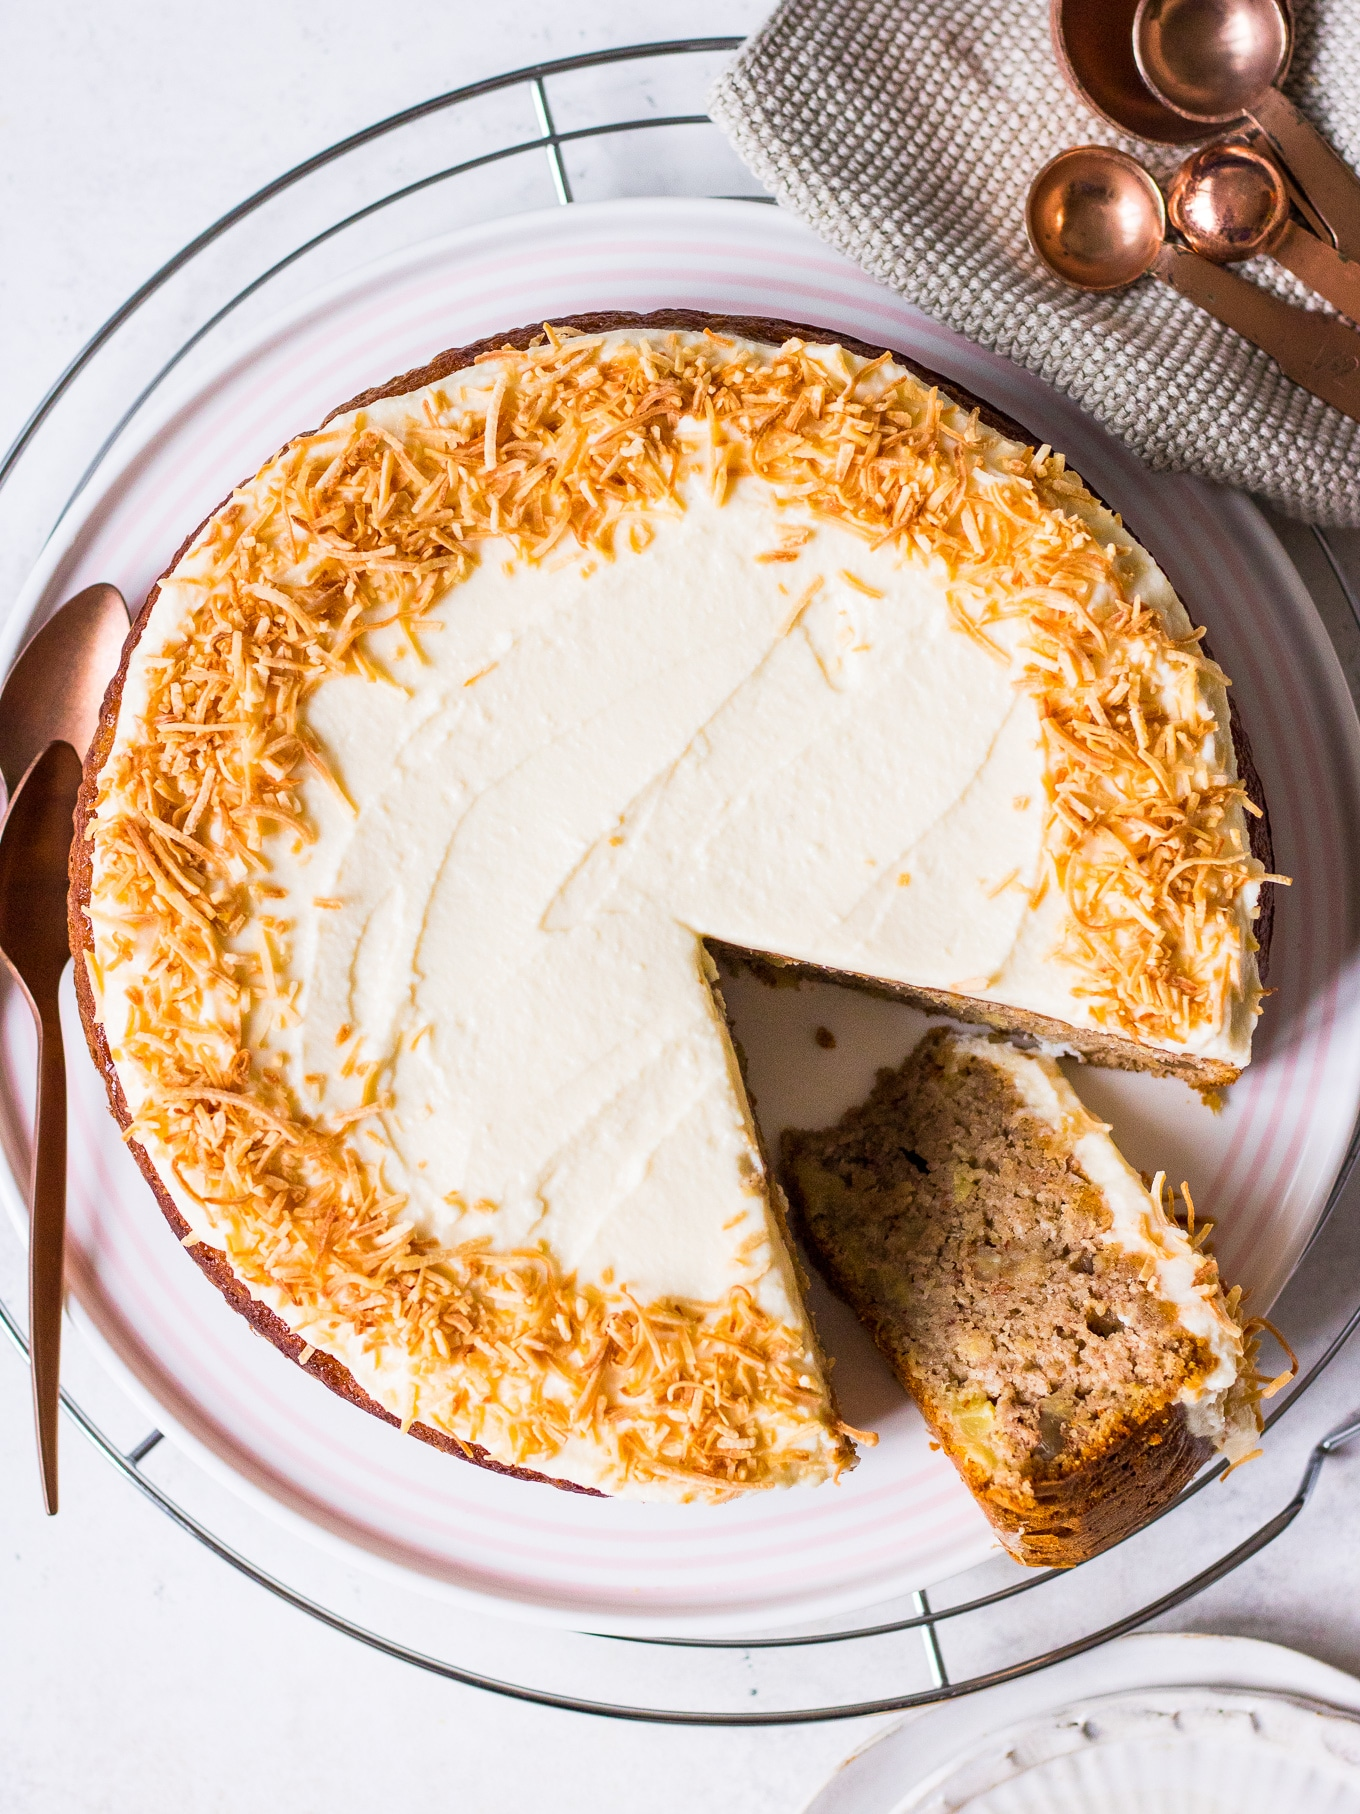 Top view of Hummingbird Cake Recipe by Nourish Every Day frosted with shredded coconut